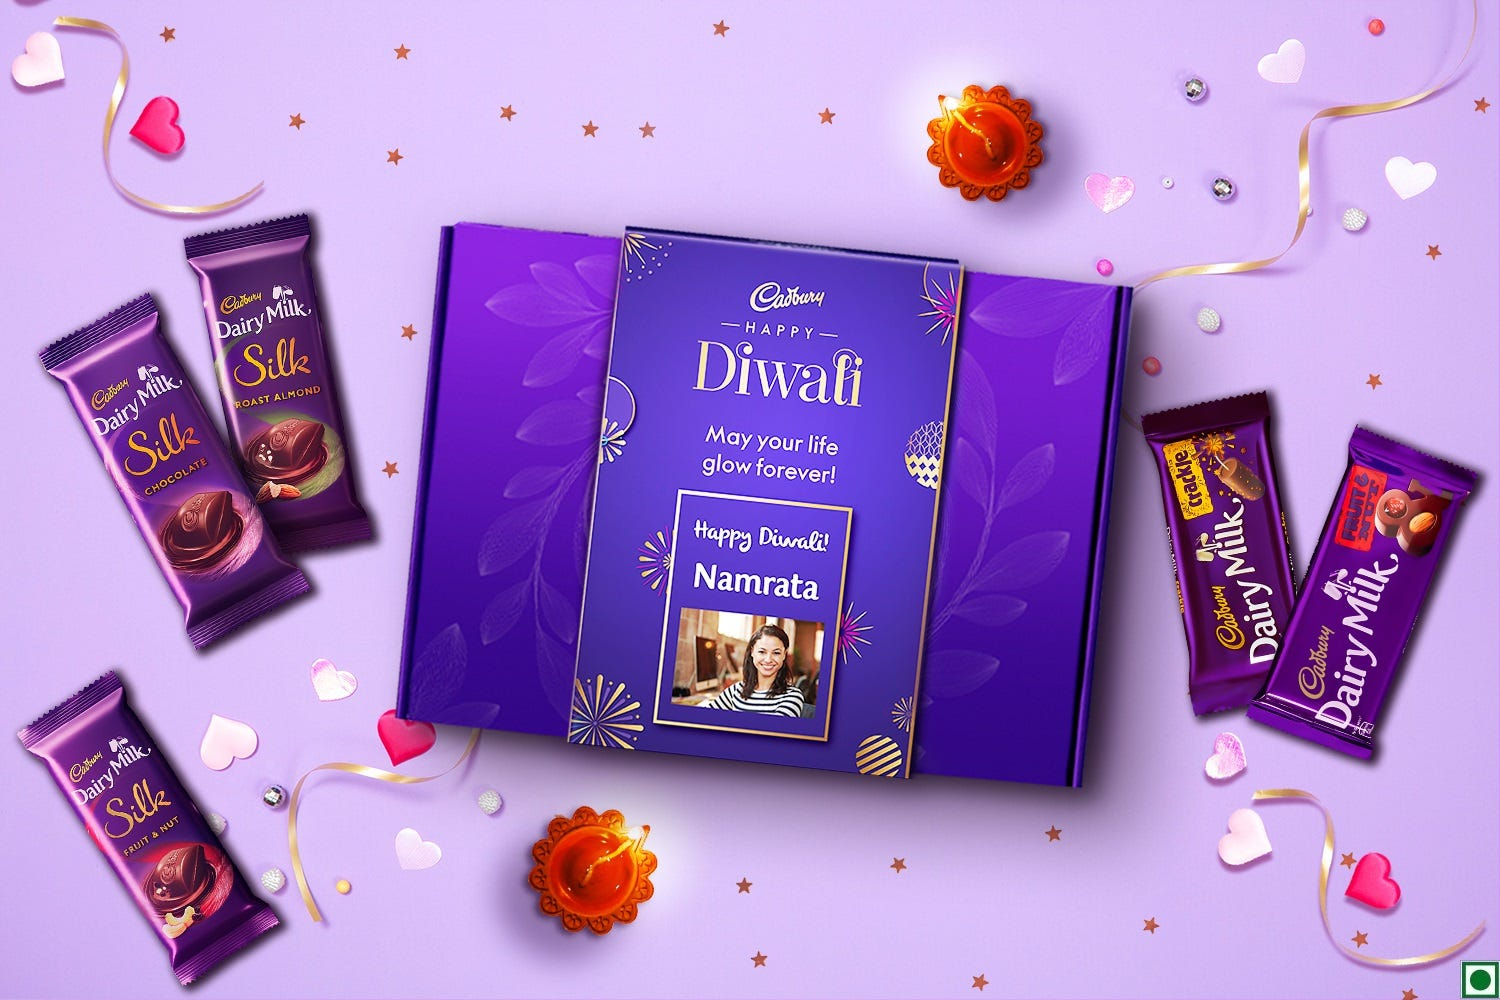 How to Make The Most of Corporate Diwali Gifting- Best Diwali Gift Ideas for Clients